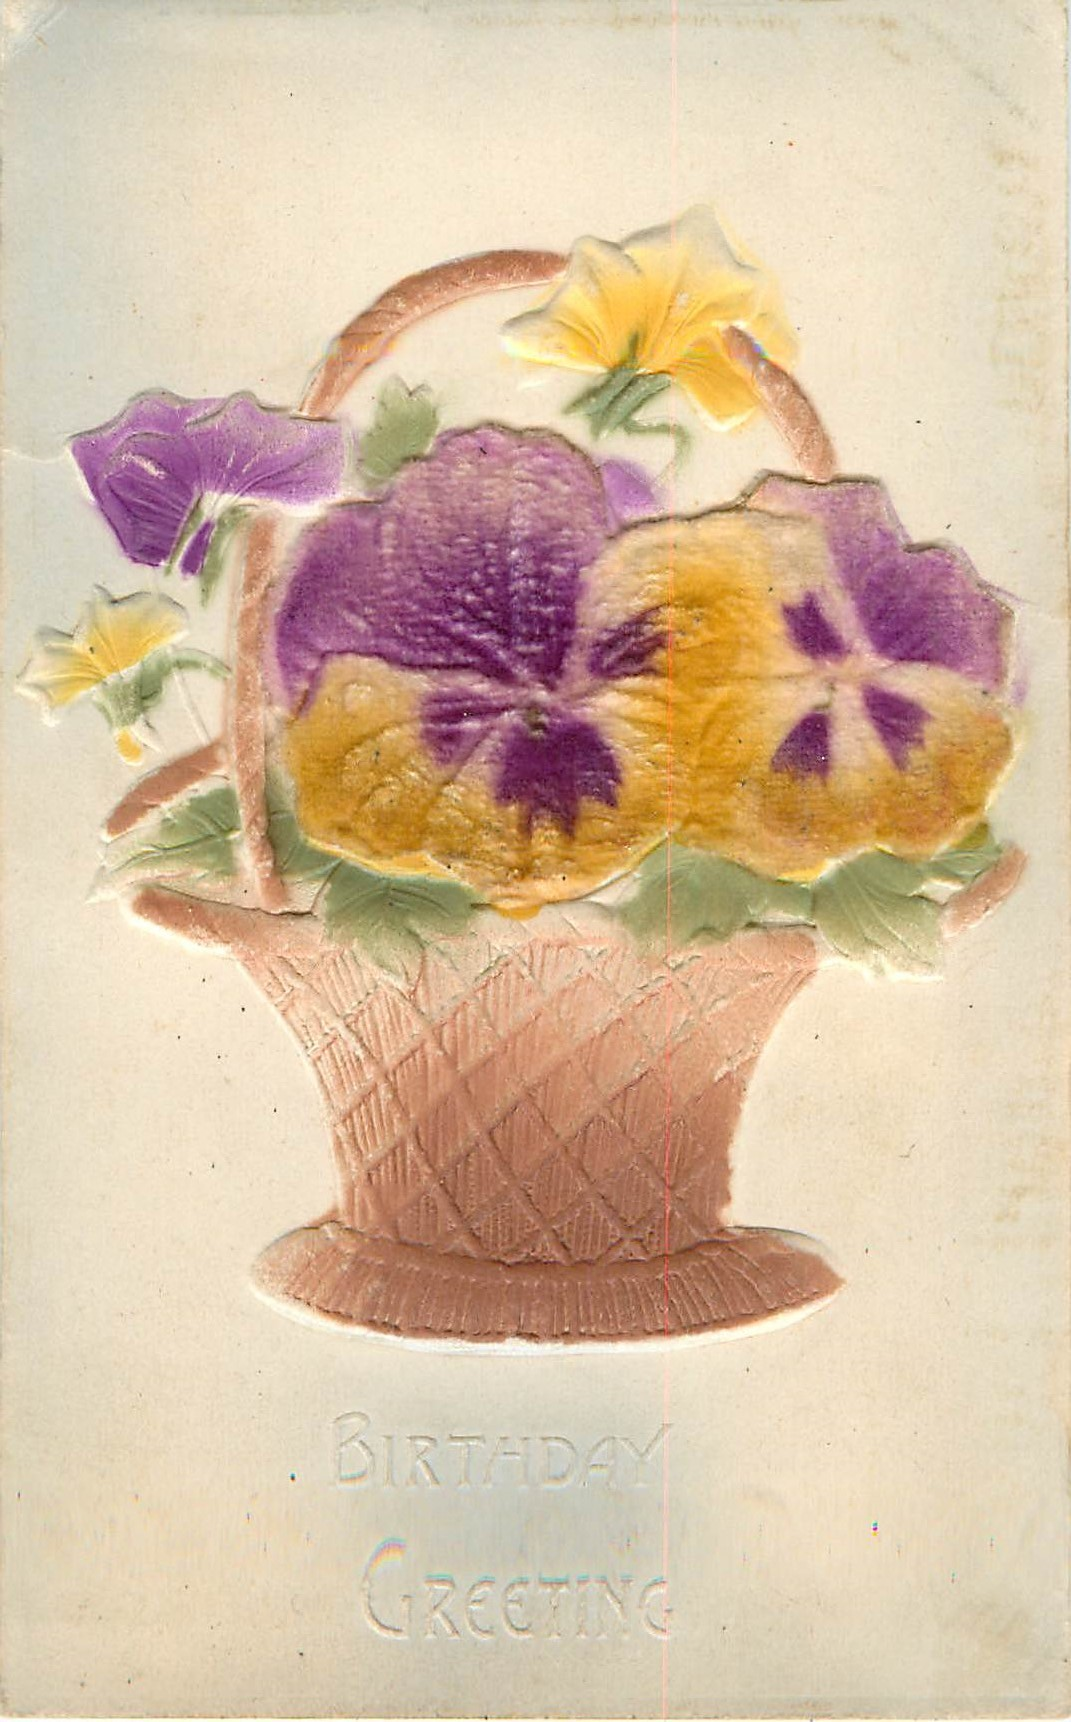 Birthday Greeting Basket Pansy